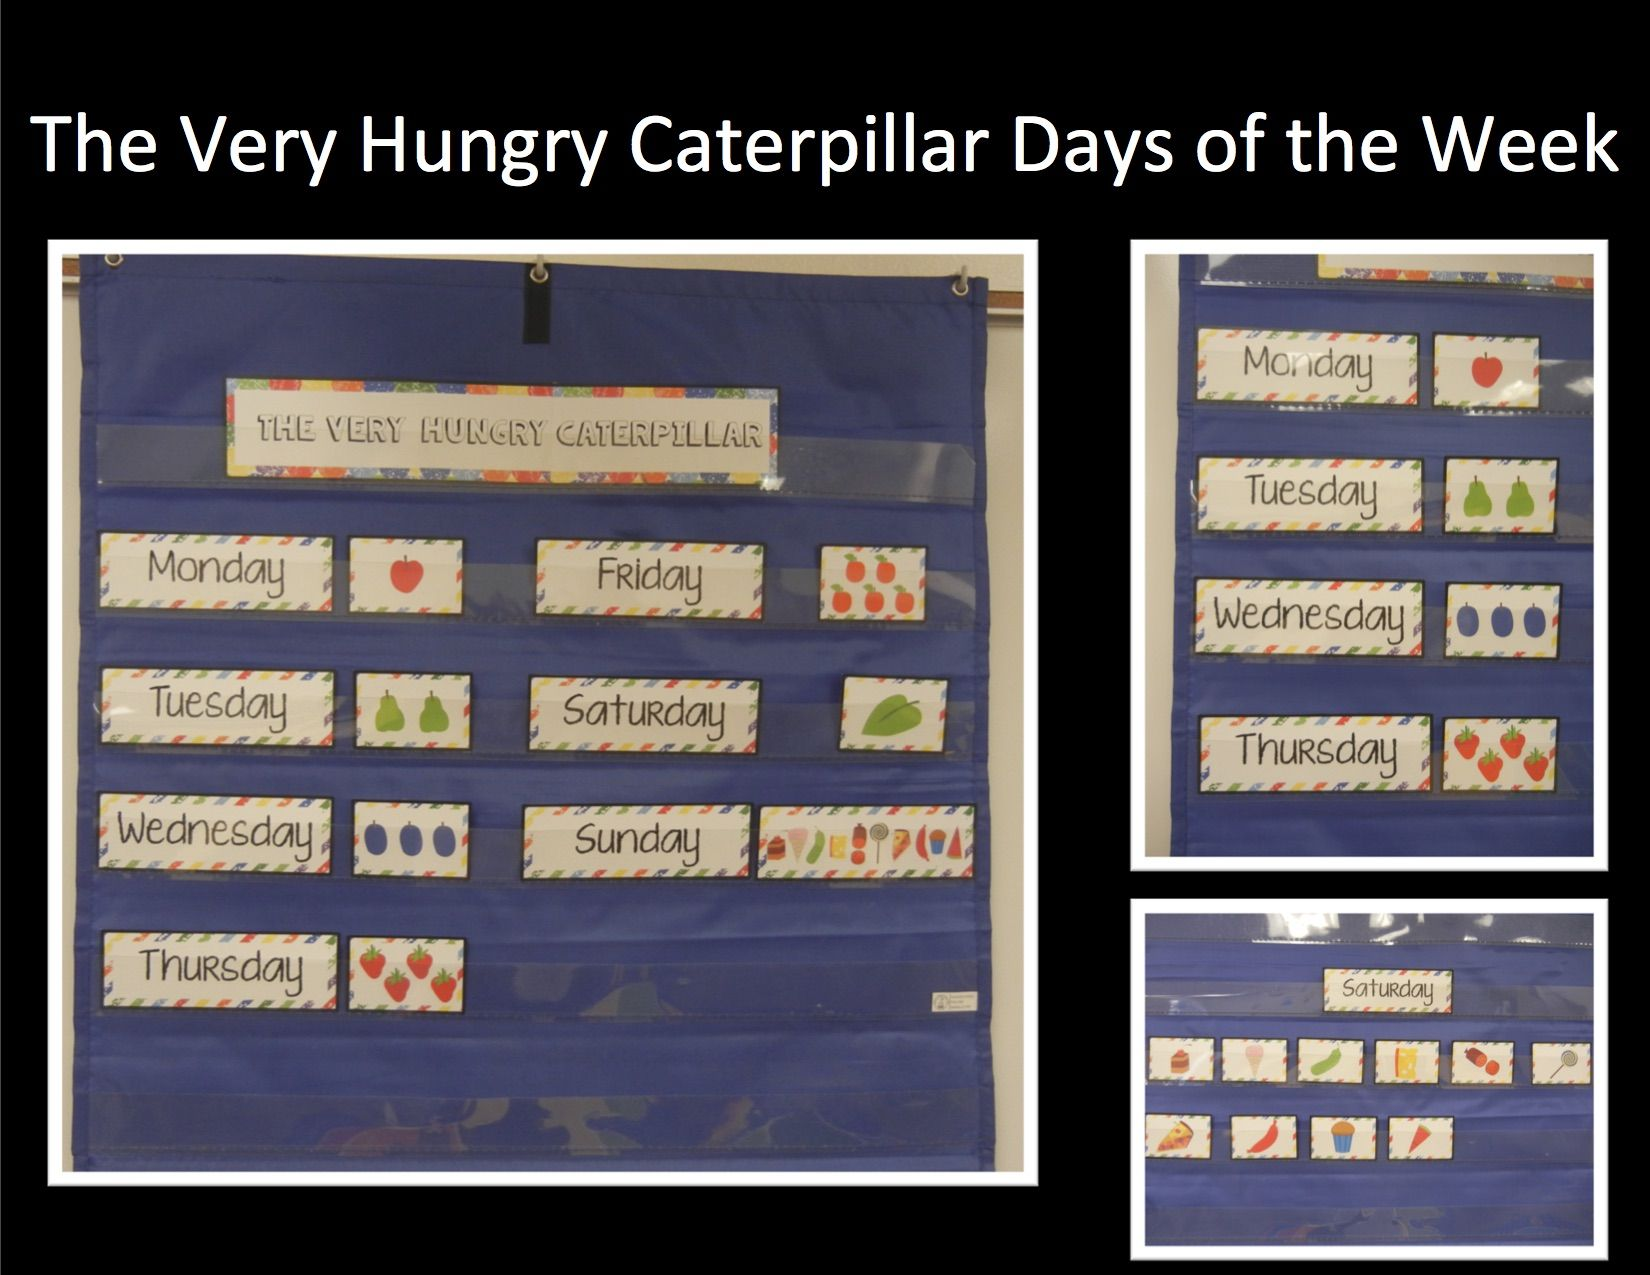 days of the week the very hungry caterpillar hungry